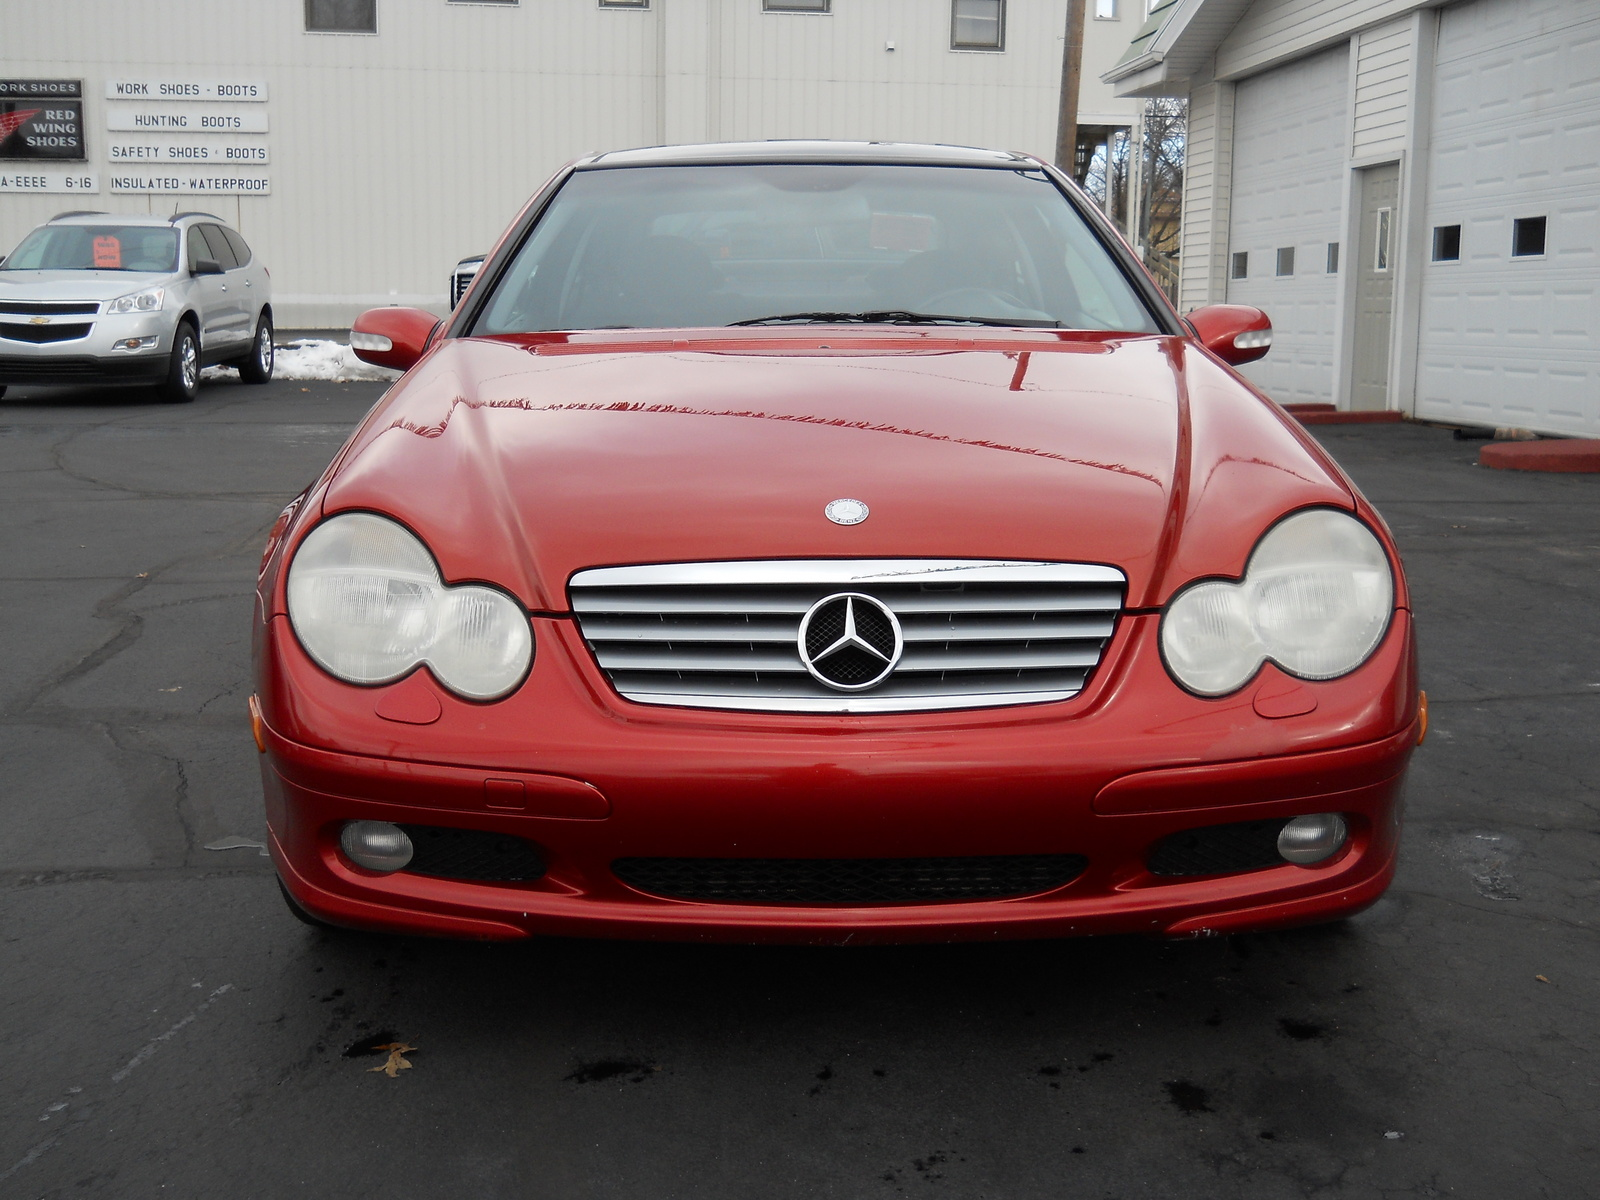 2002 mercedes benz c class pictures cargurus for Mercedes benz c350 supercharger